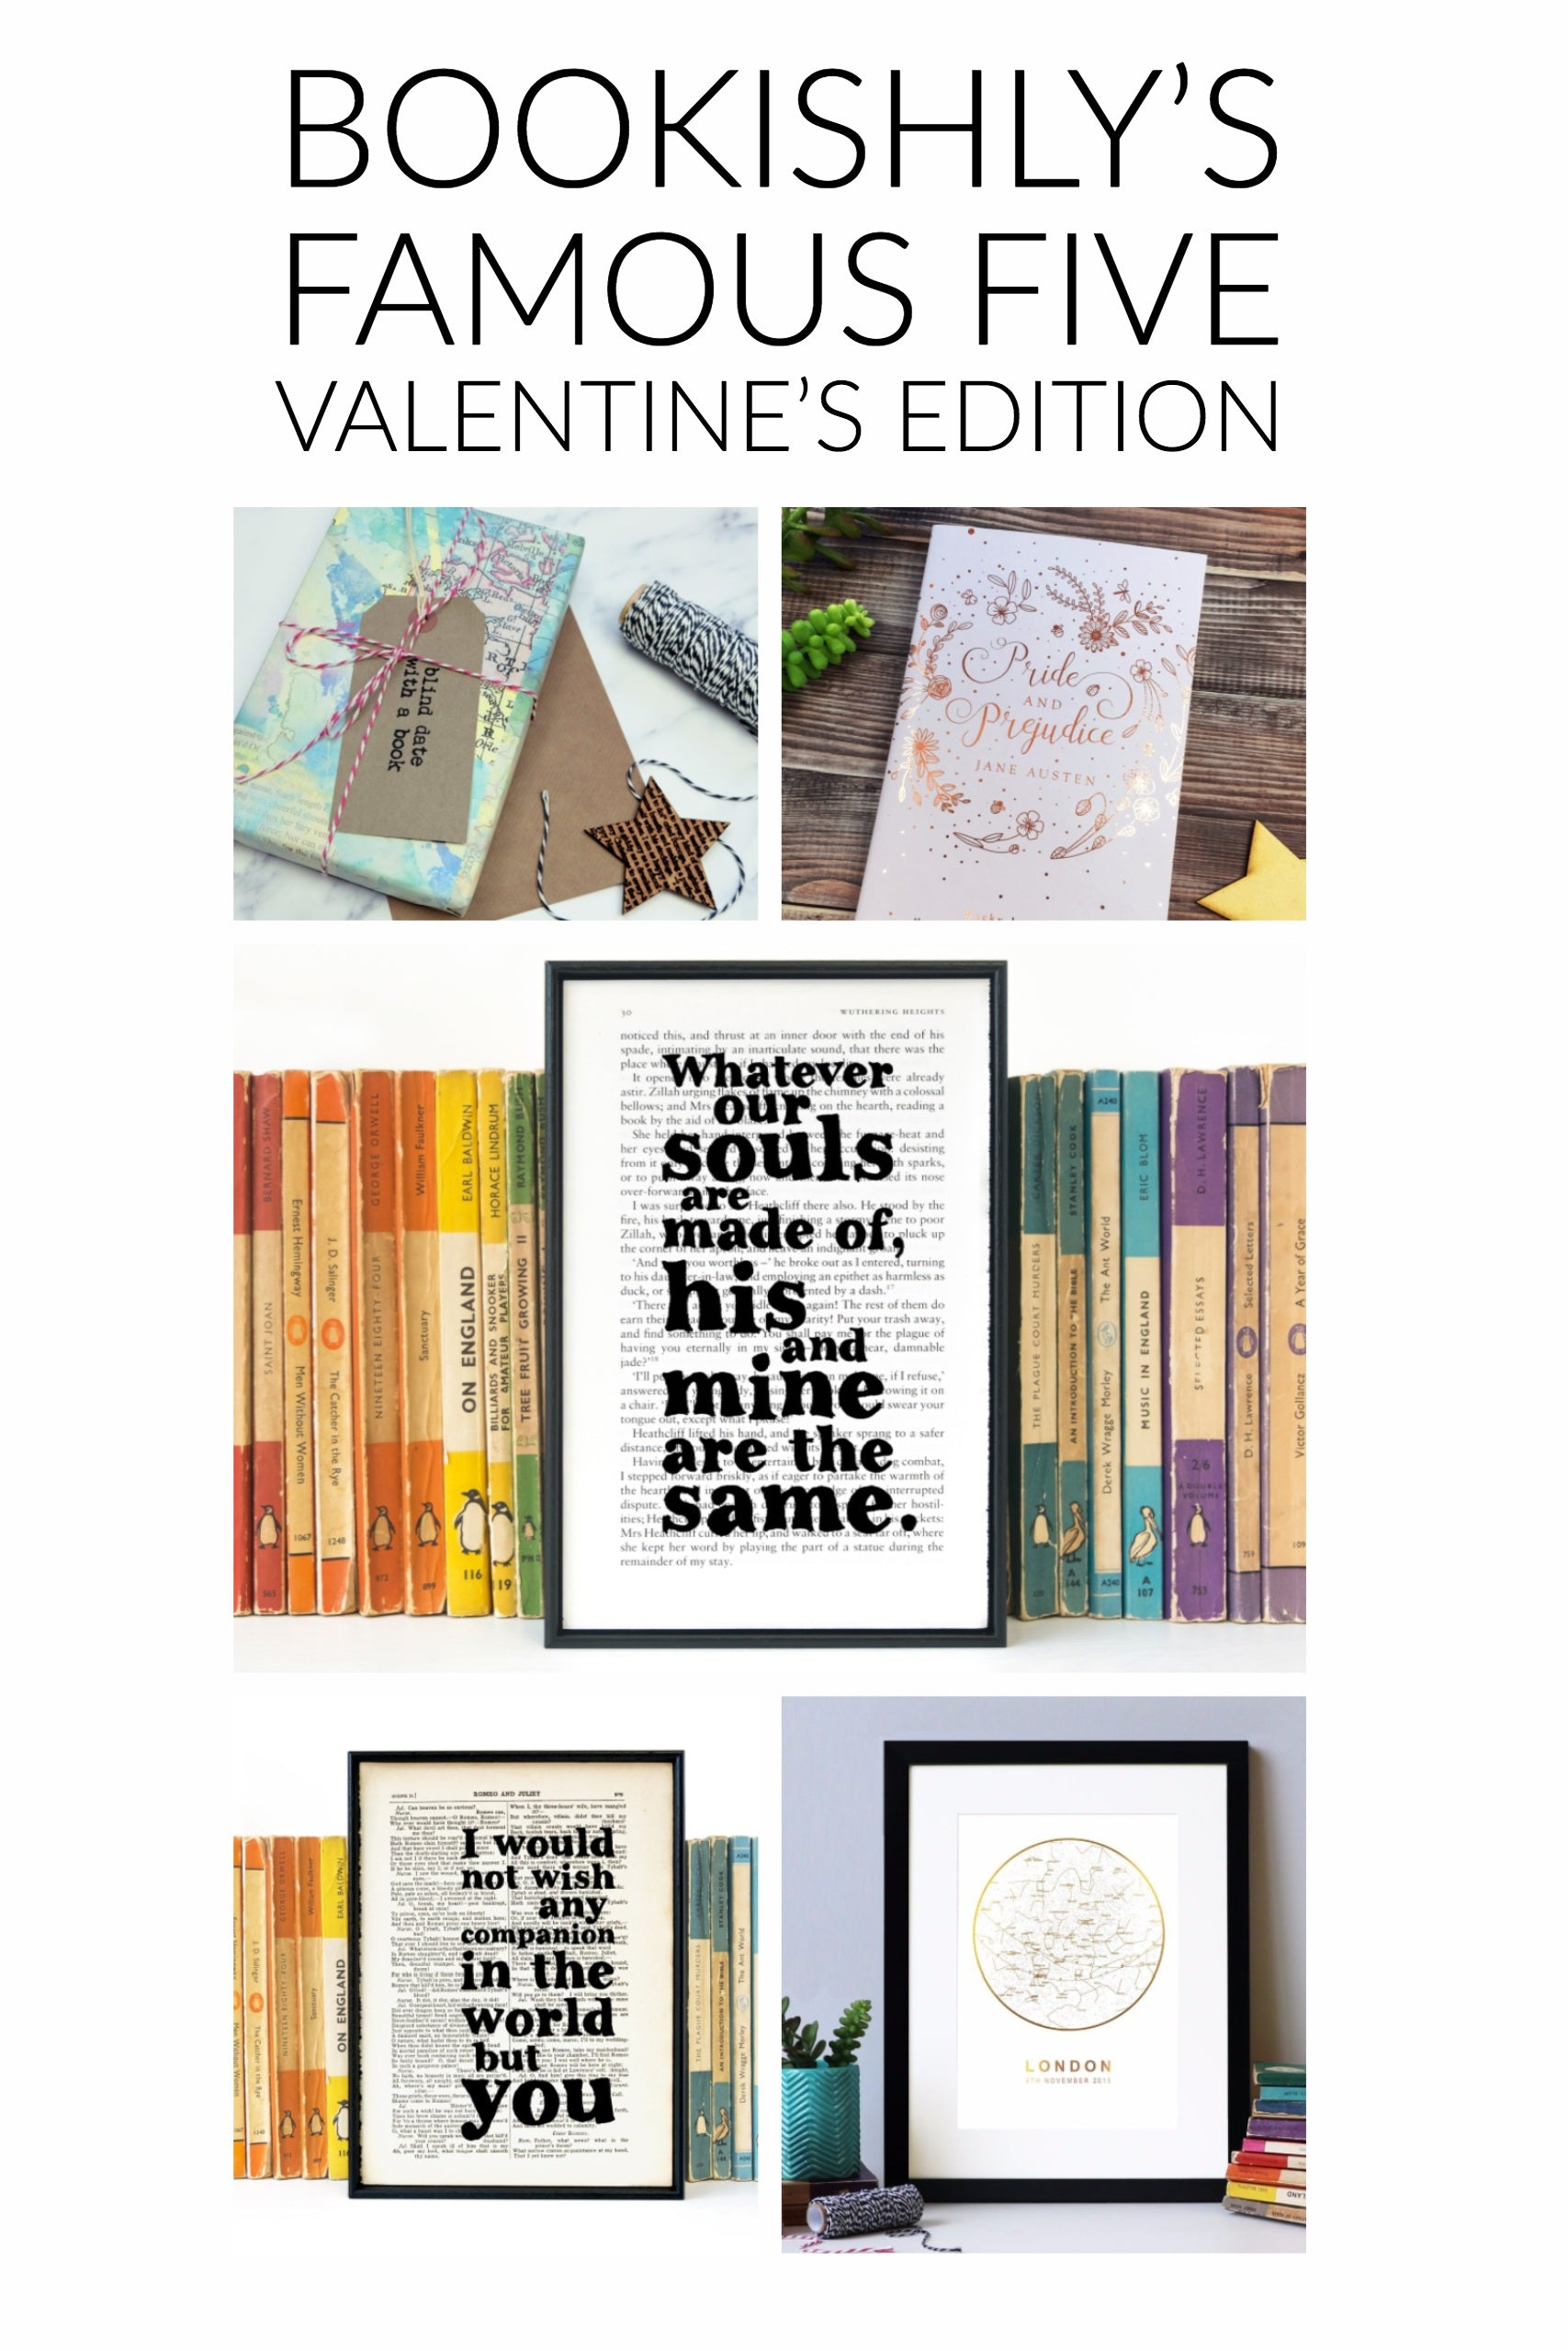 Bookishly's Famous Five - Valentine's Edition